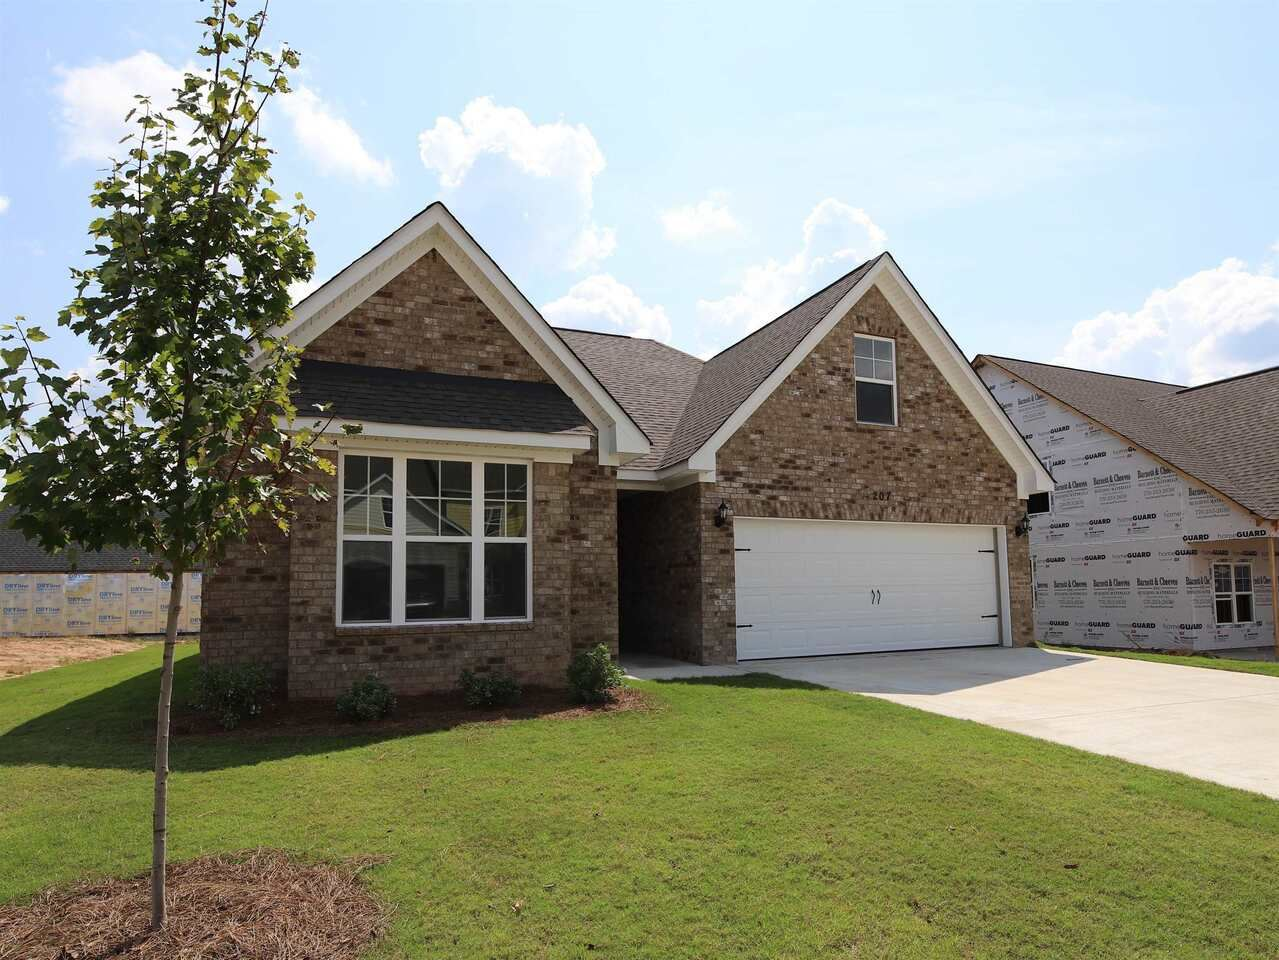 207 Lana Lane, LaGrange, GA 30241 - #: 8935062